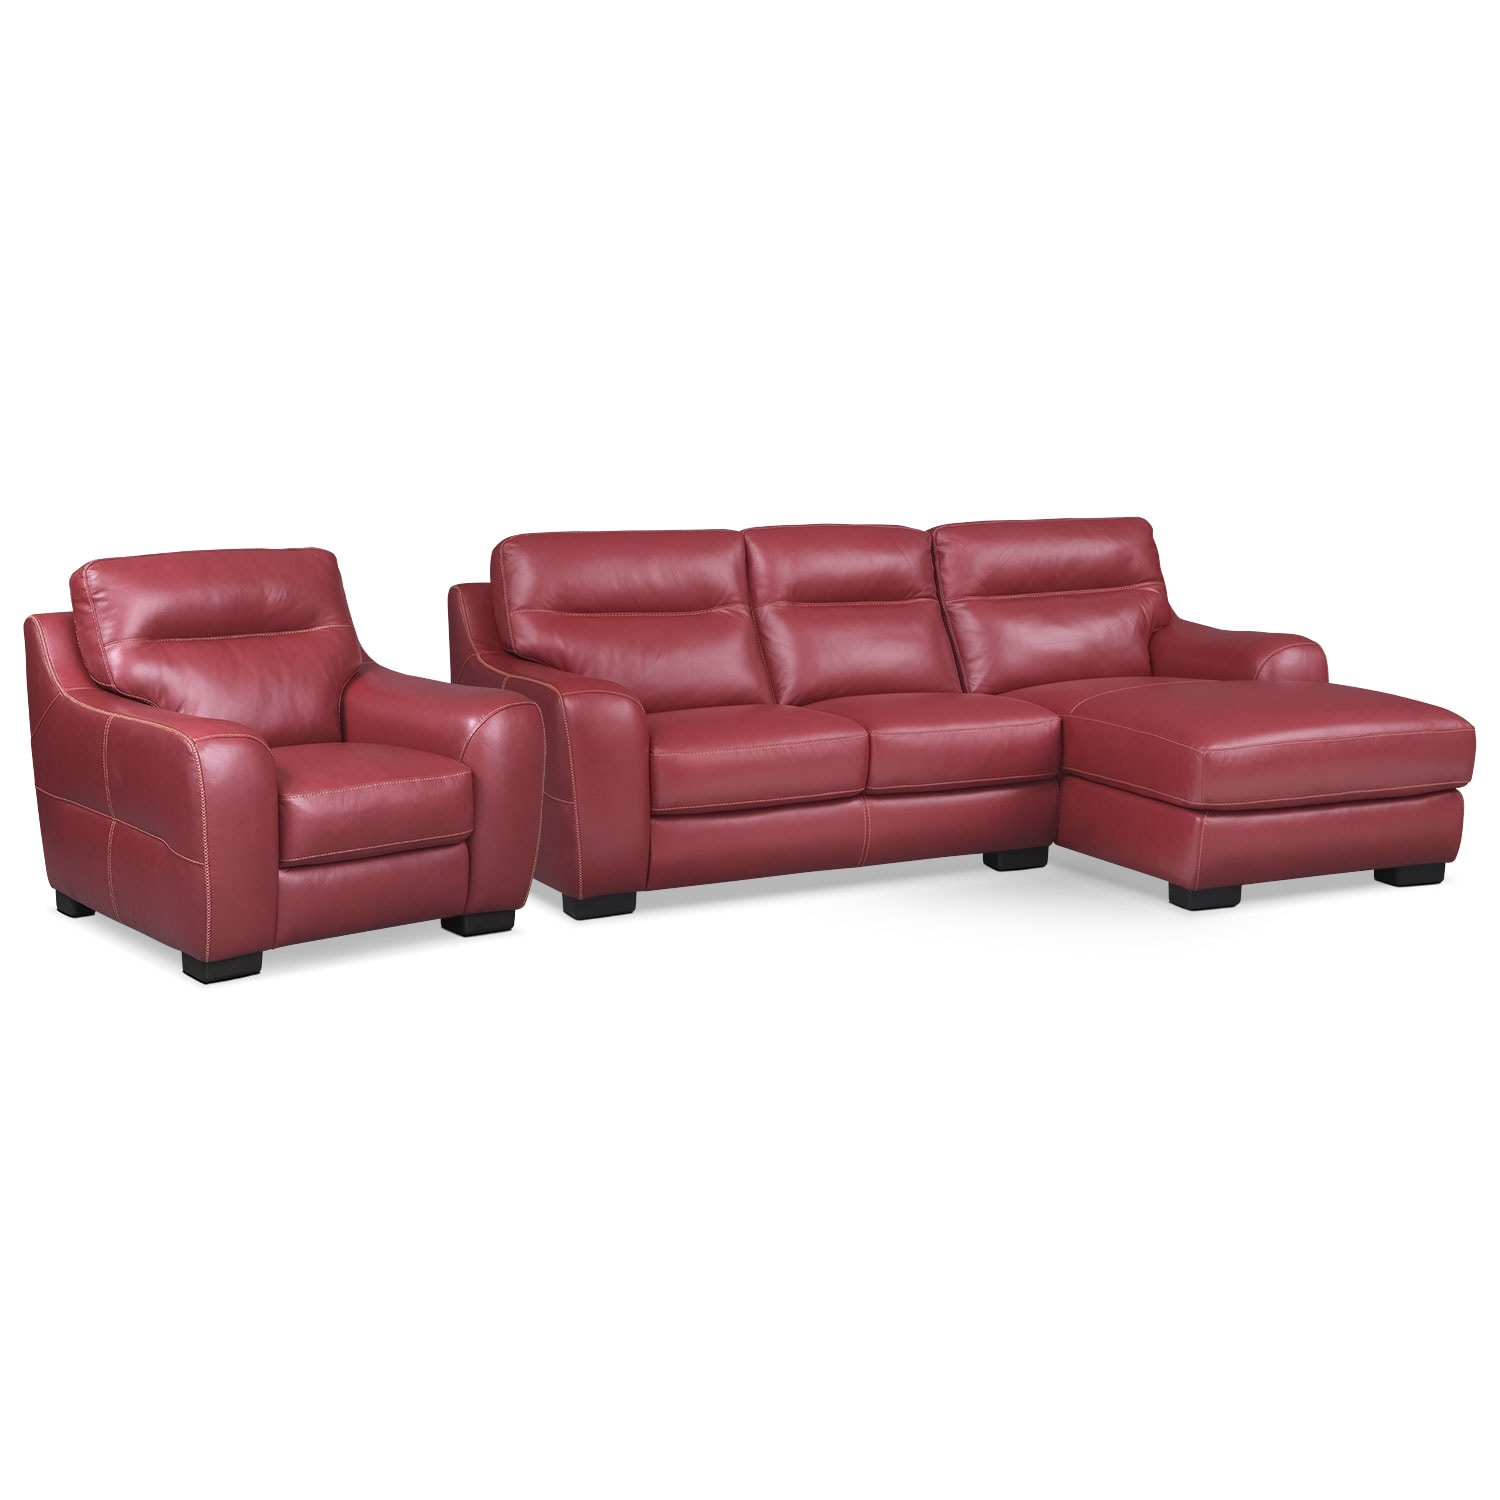 Living Room Furniture - Rocco 2-Piece Right-Facing Chaise Sectional and Chair  - Red